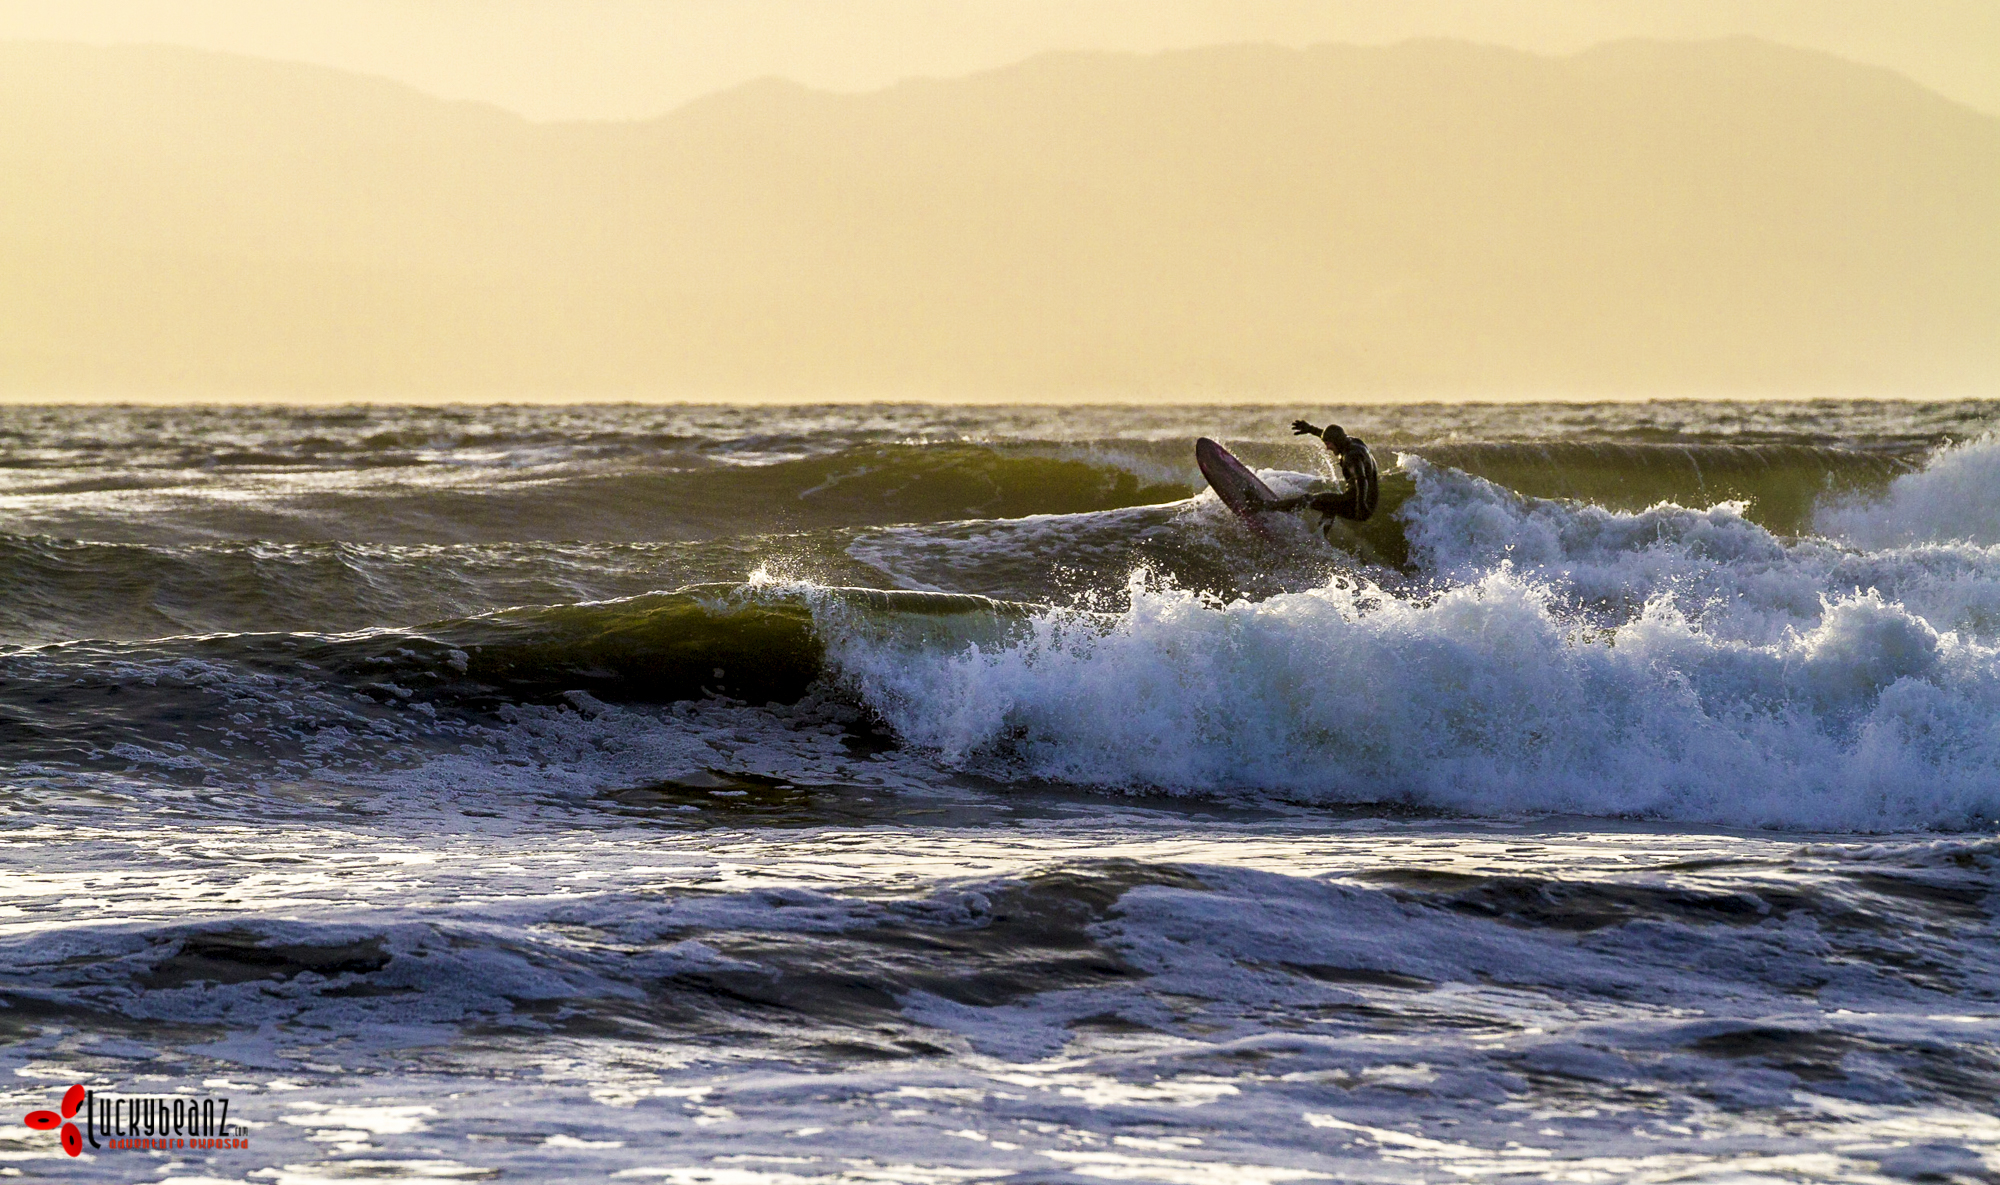 Some good surfers in the water.